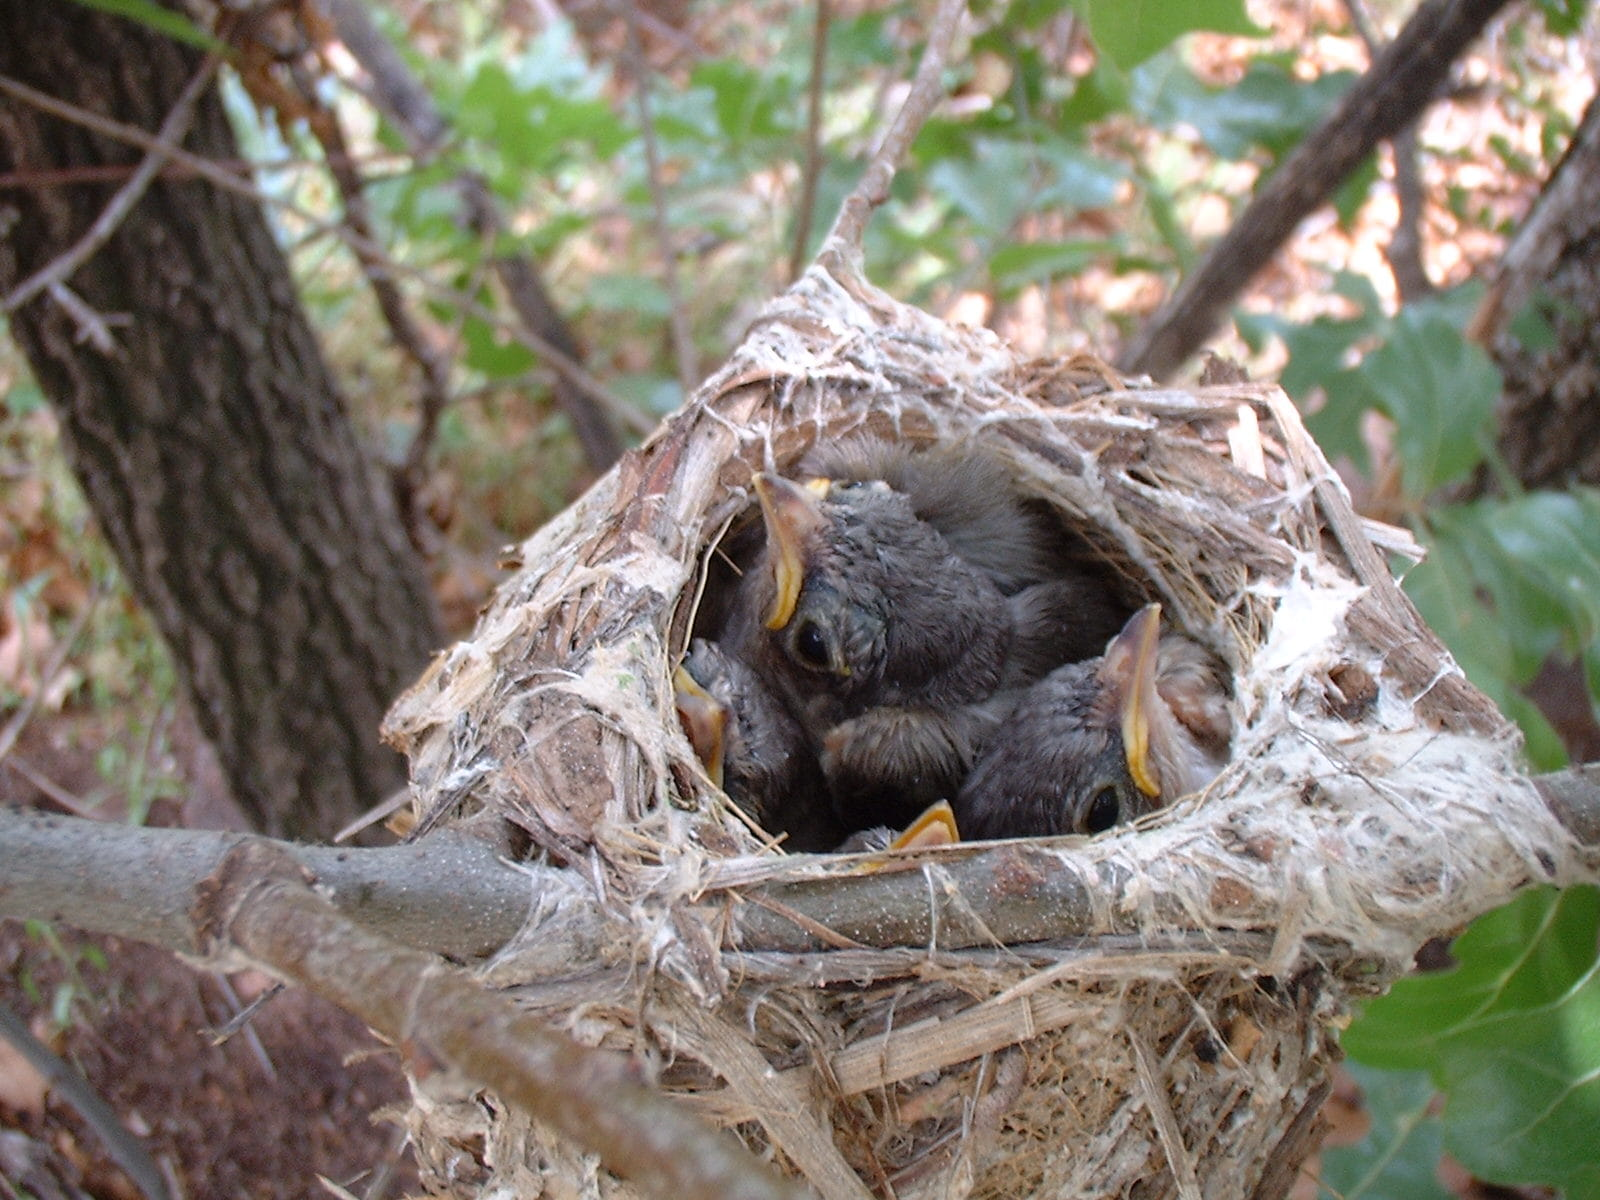 Wildlife, bird nest